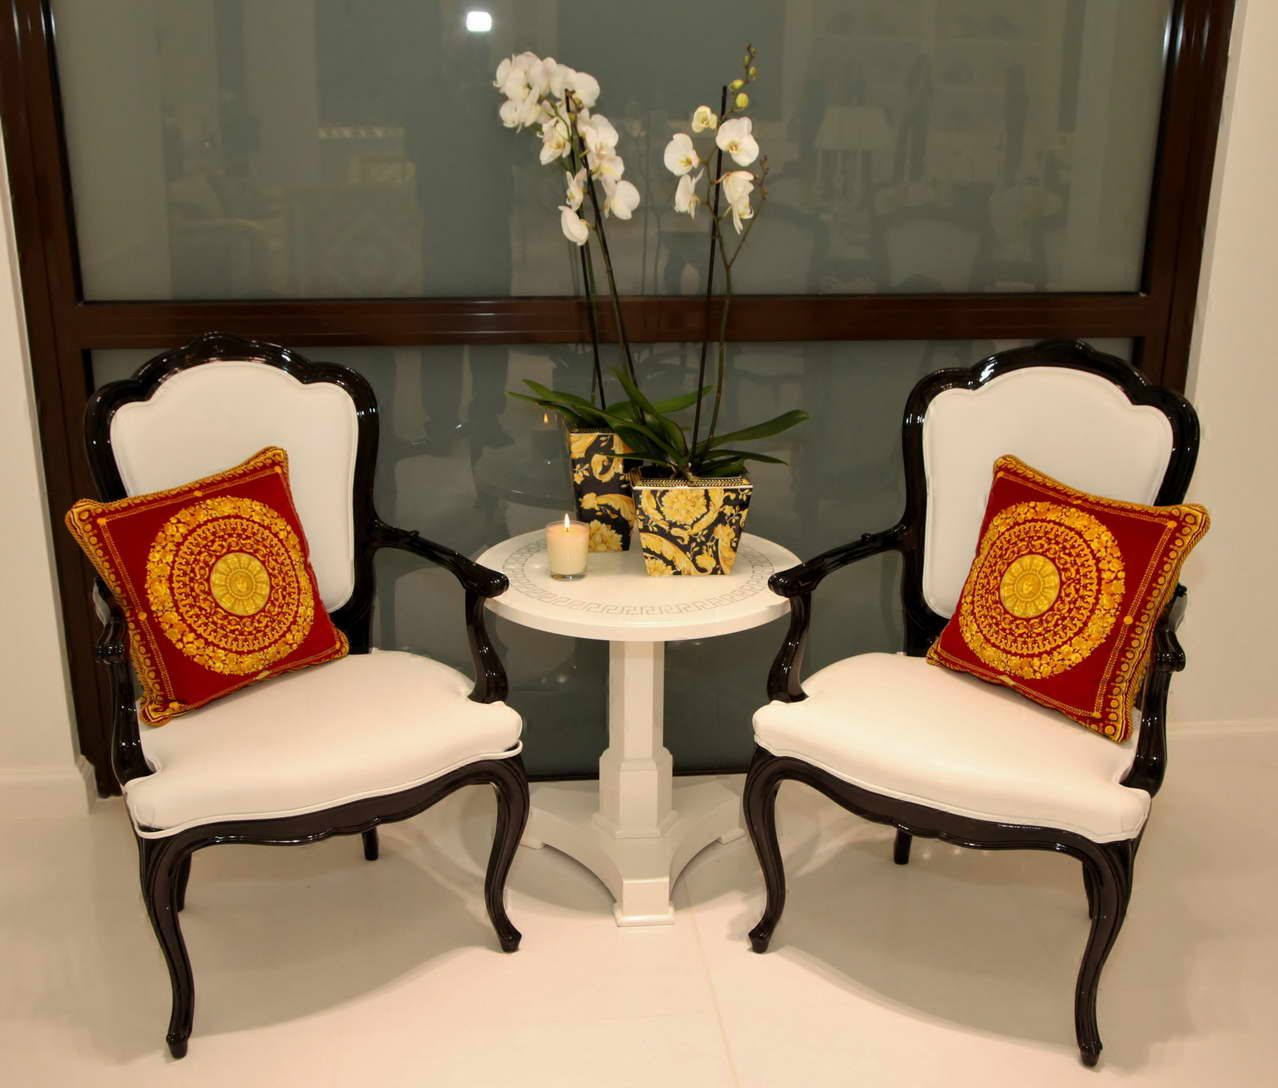 versace home furnishings   giangiacomo ferraris versace ceo says the new  versace home boutique. versace home furnishings   giangiacomo ferraris versace ceo says